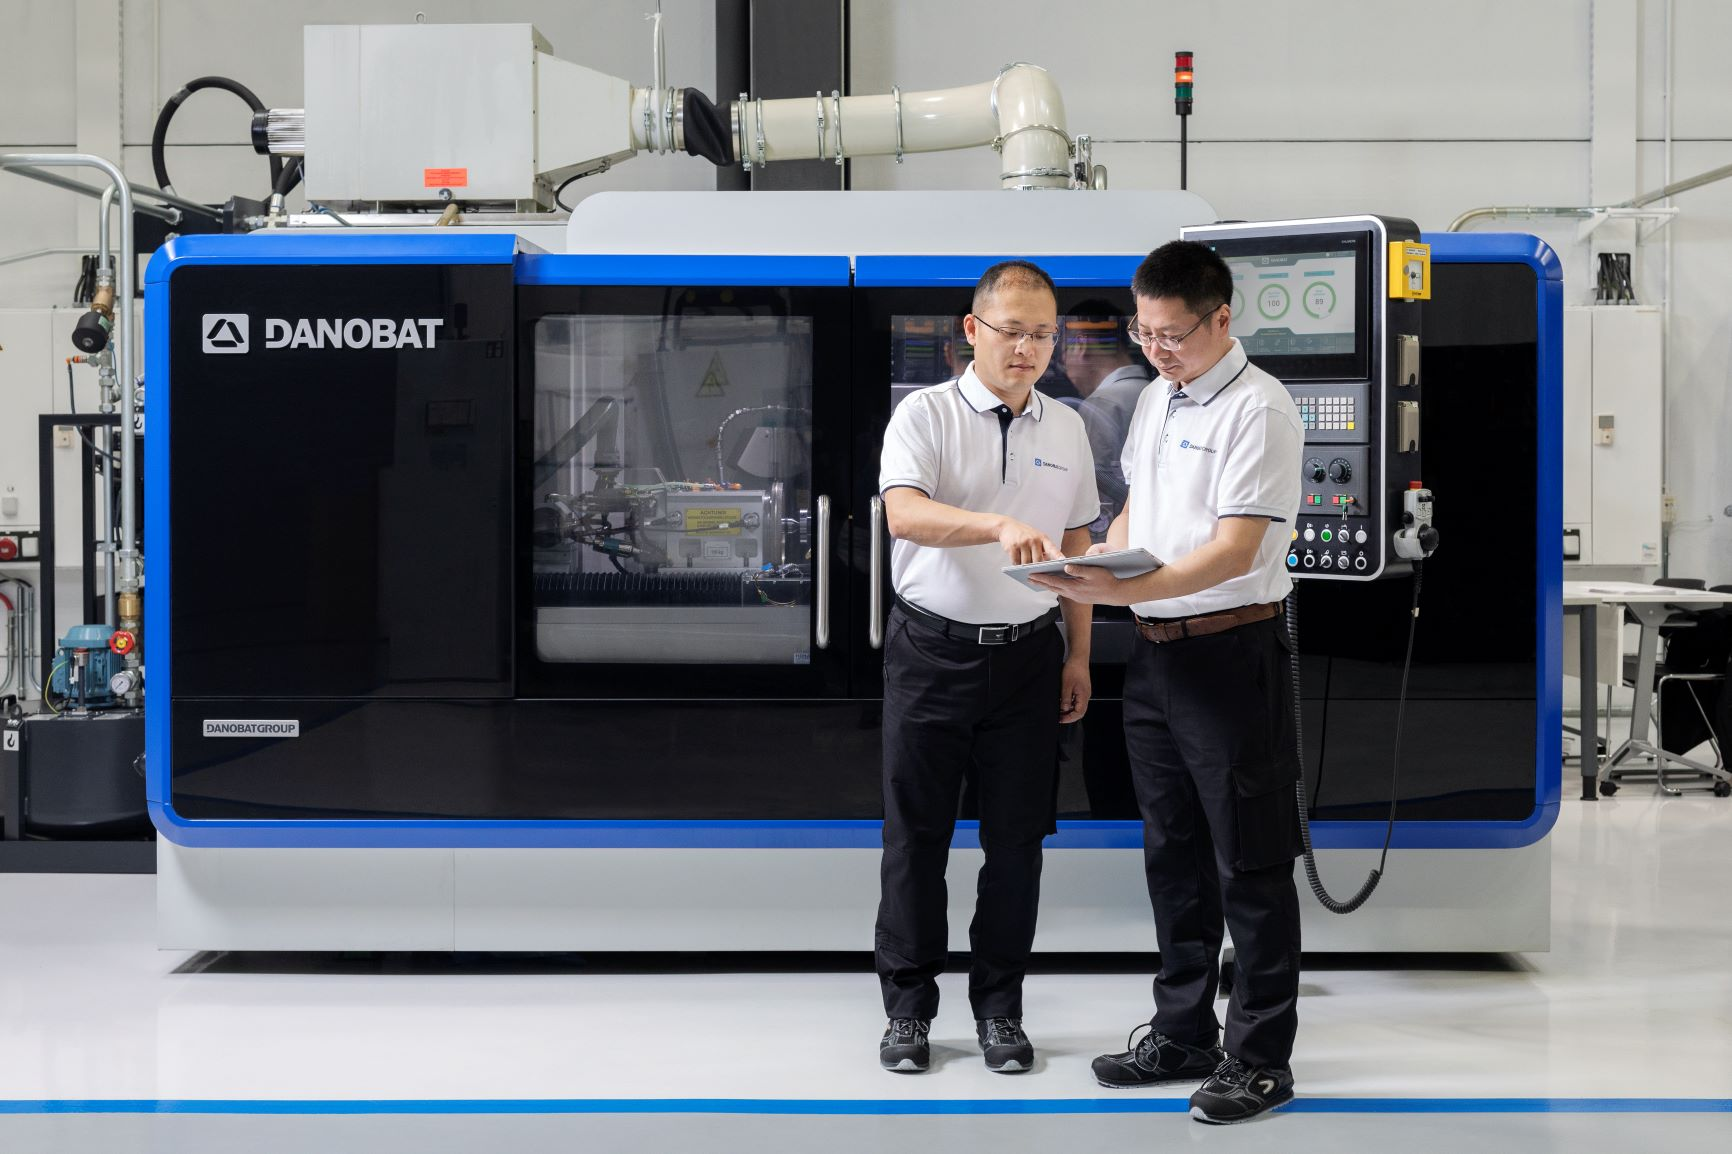 DANOBATGROUP showcases the latest developments of advanced manufacturing solutions of DANOBAT and SORALUCE brands at CIMT 2019 in Beijing